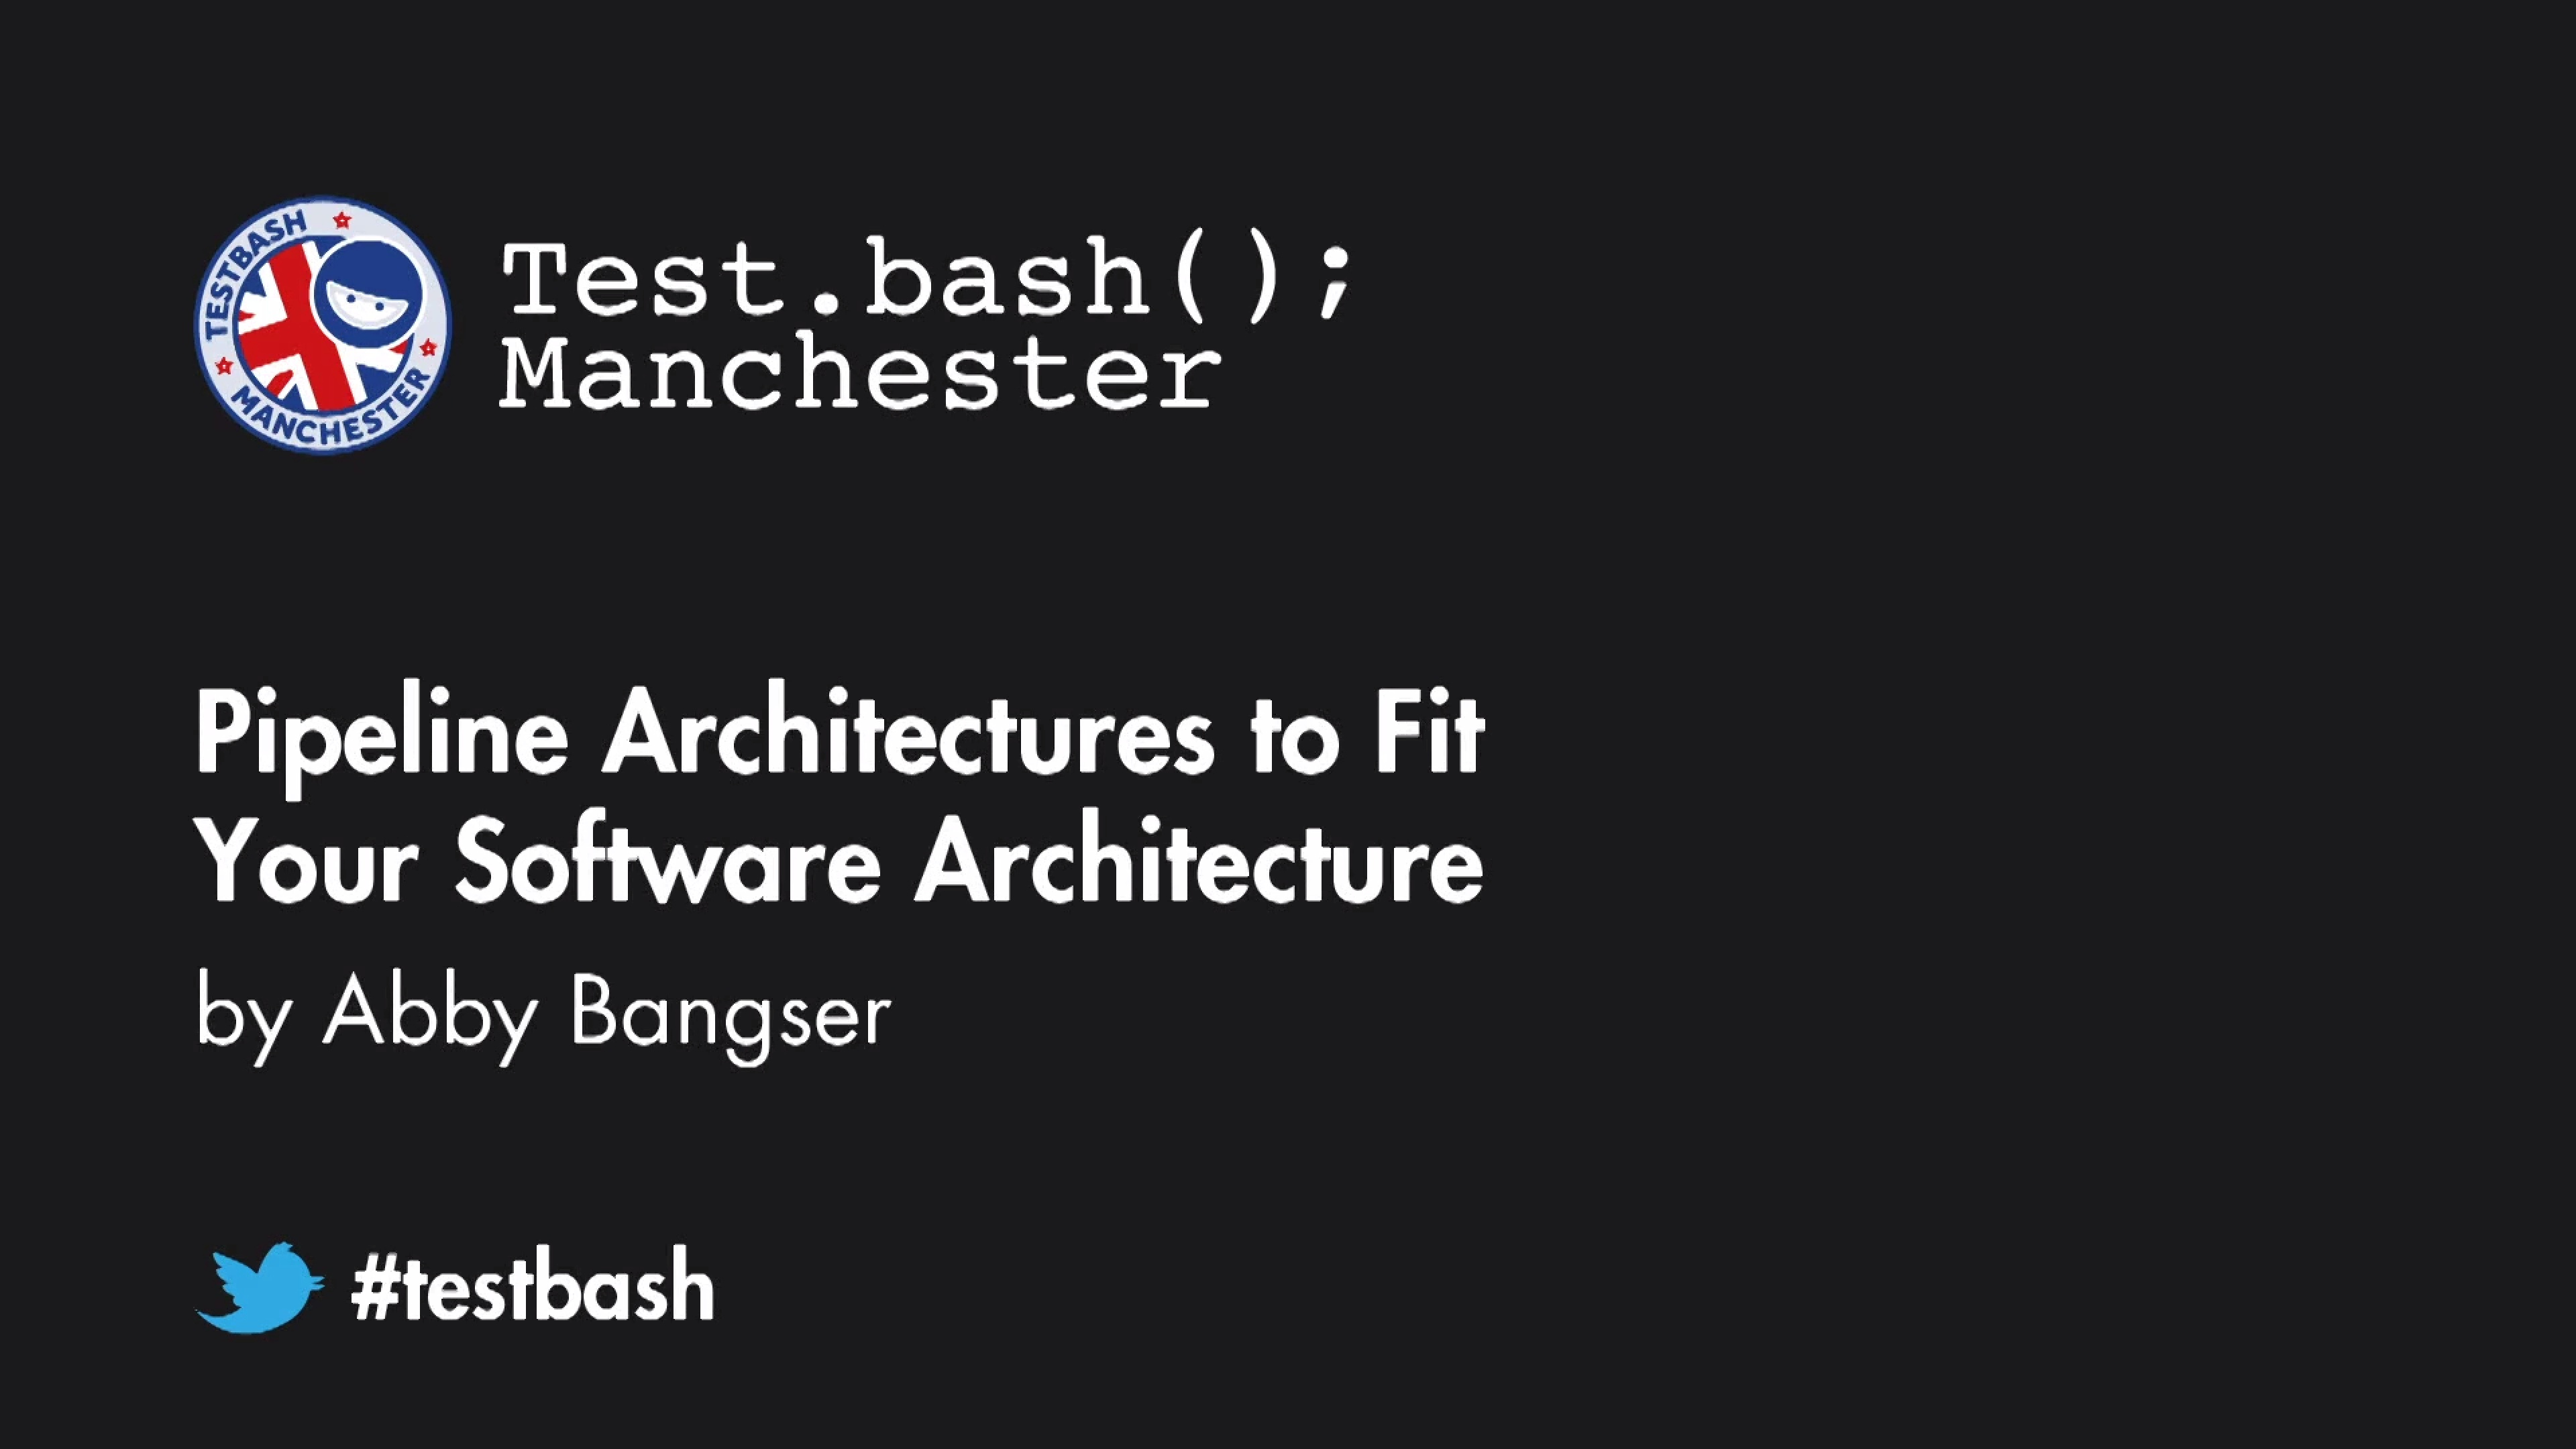 Pipeline Architectures to Fit Your Software Architecture - Abby Bangser